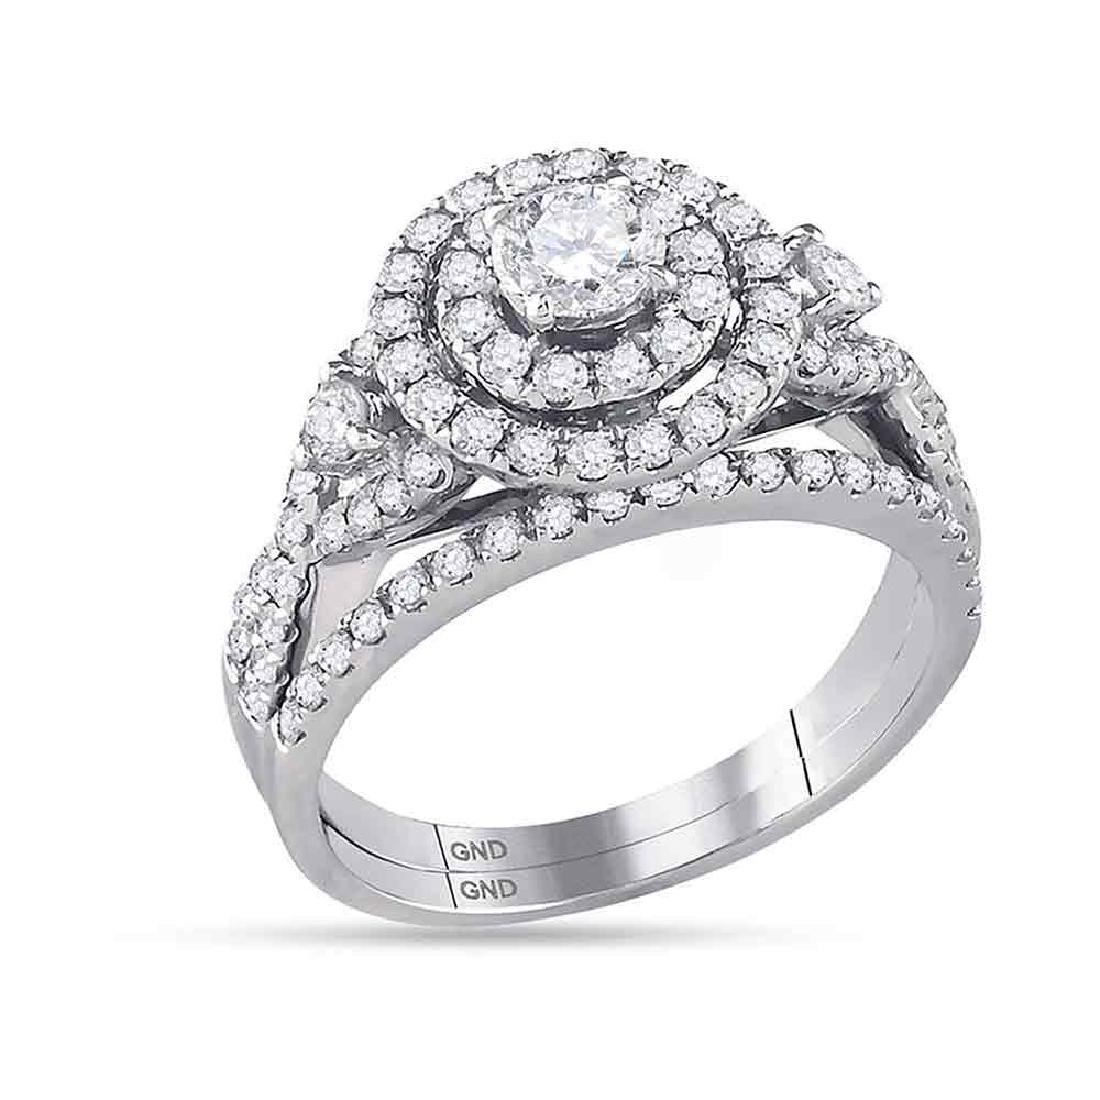 1.49 CTW Diamond Halo Bridal Engagement Ring 14KT White